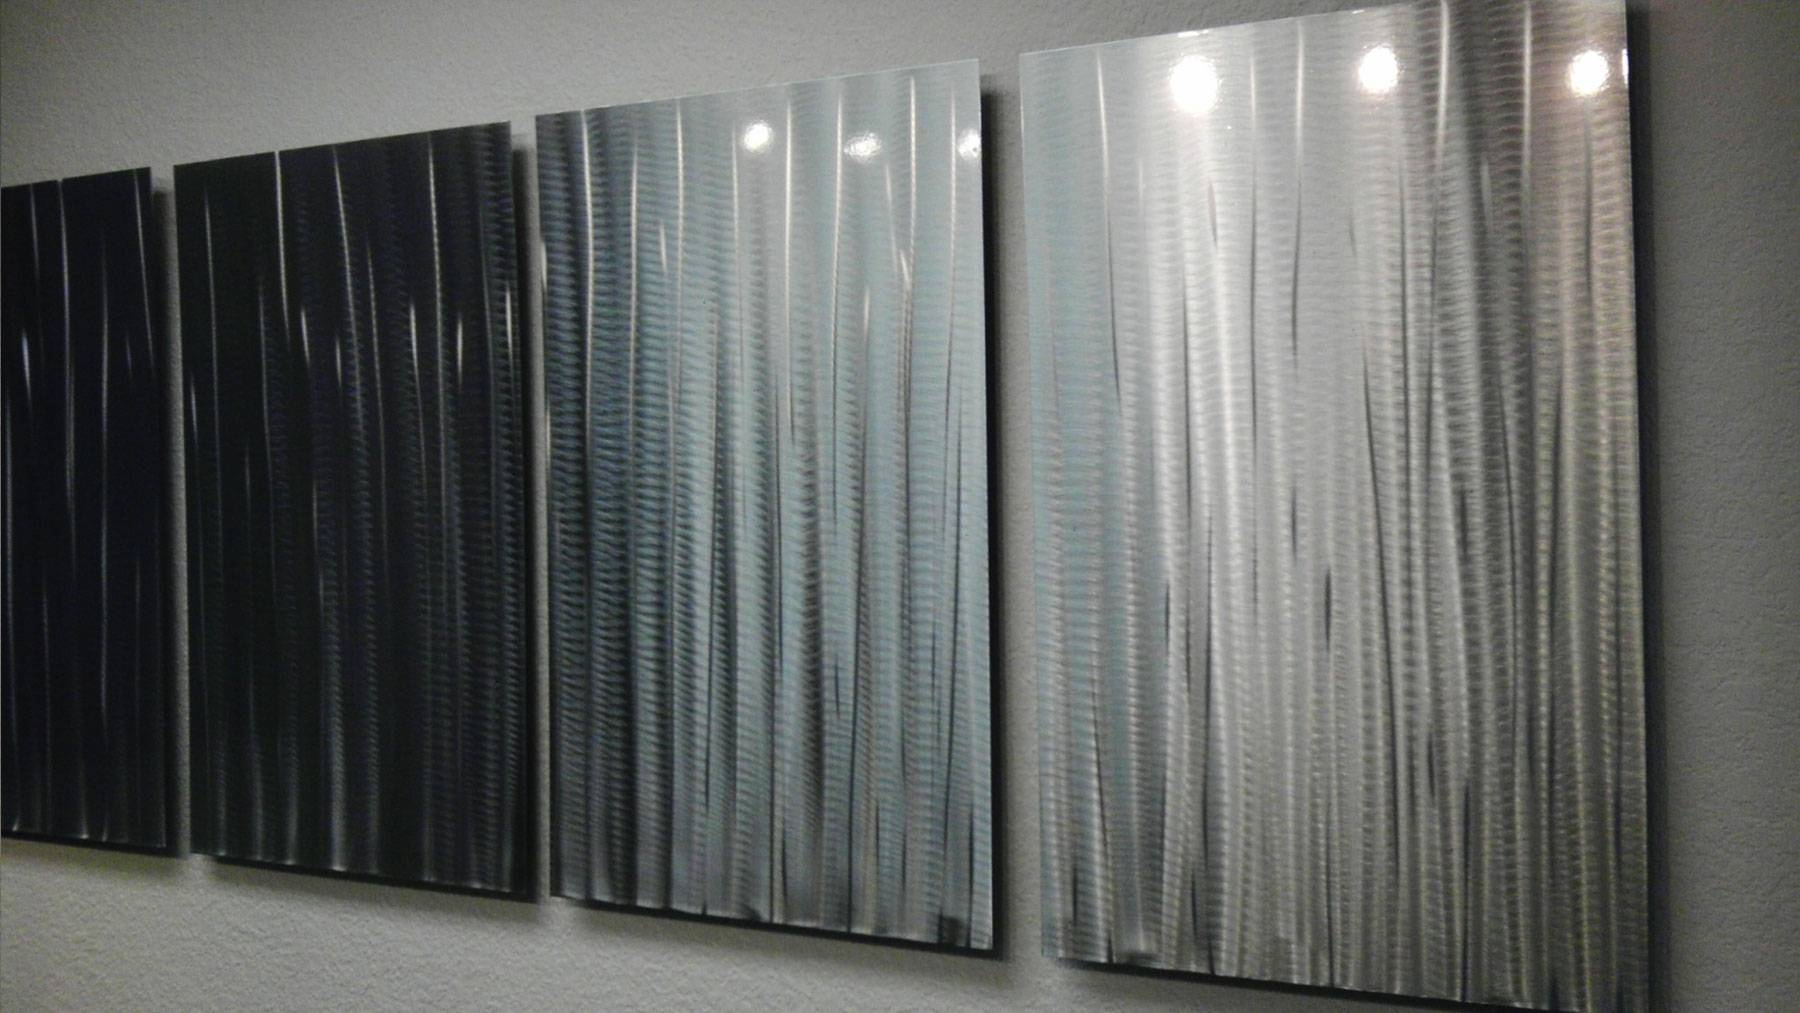 Bamboo Forest – Abstract Metal Wall Art Contemporary Modern Decor Within Most Recent Bamboo Metal Wall Art (View 4 of 25)